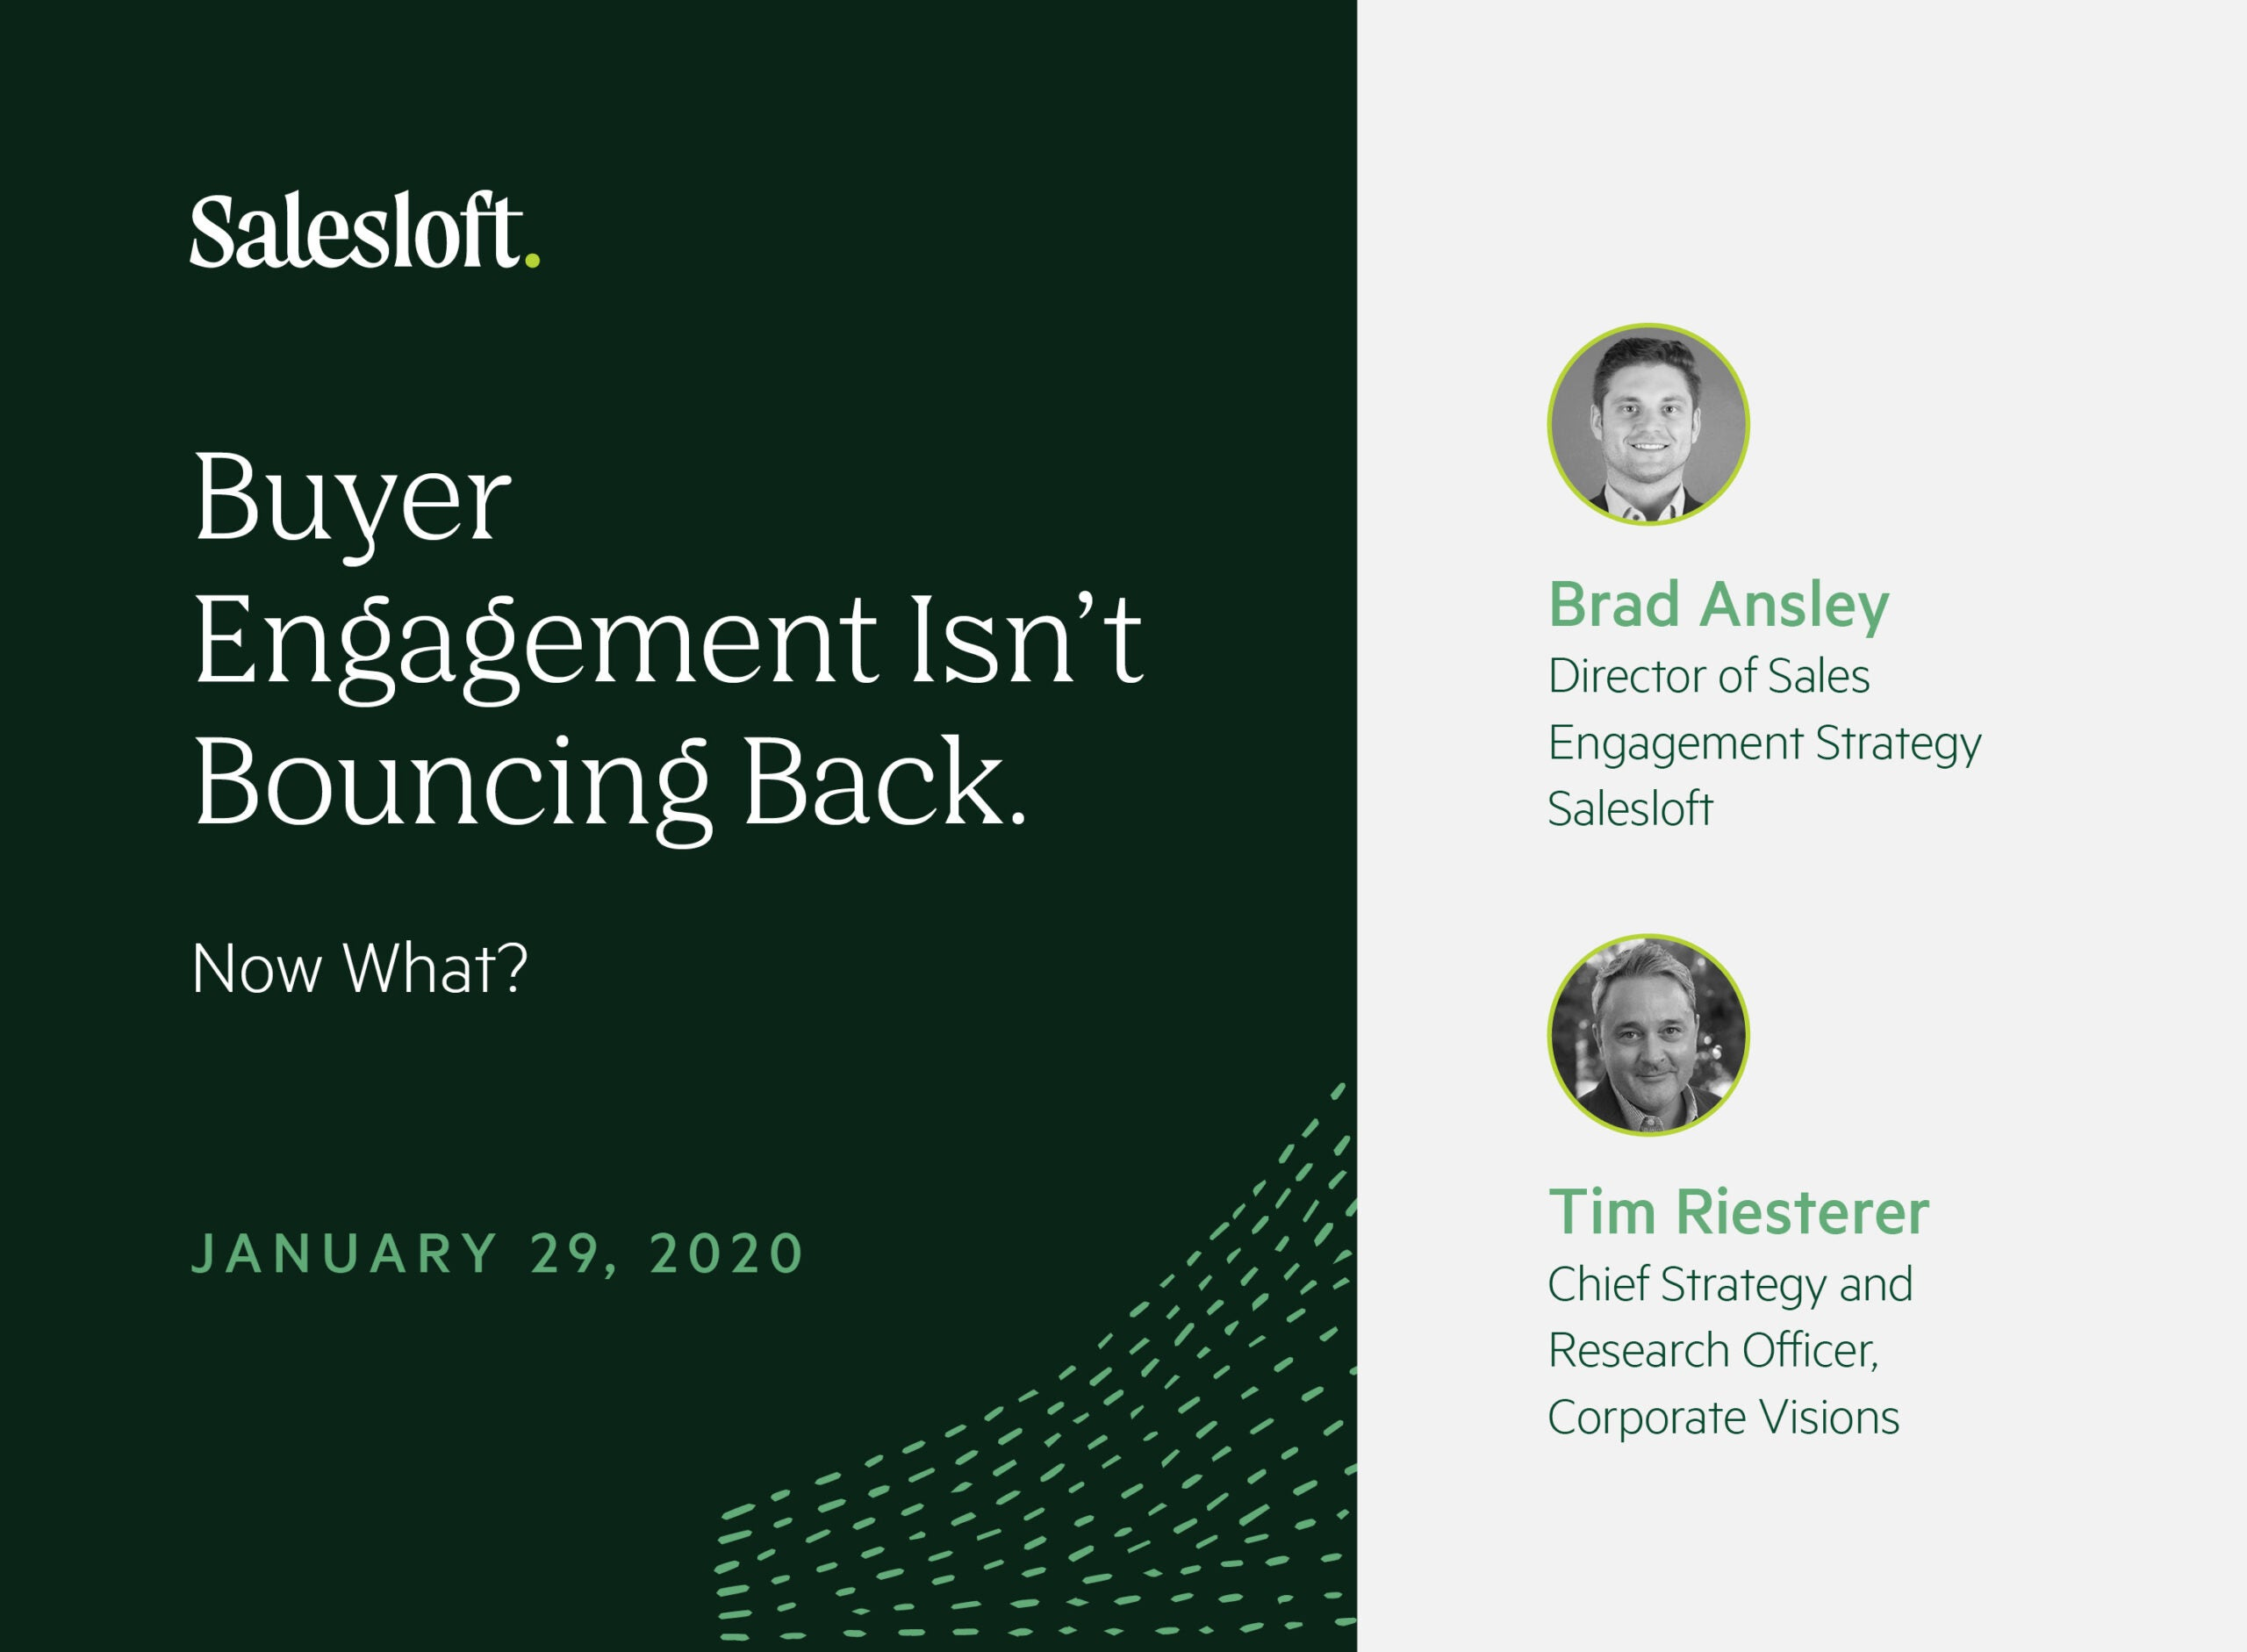 Buyer Engagement Isn't Bouncing Back. Now What?